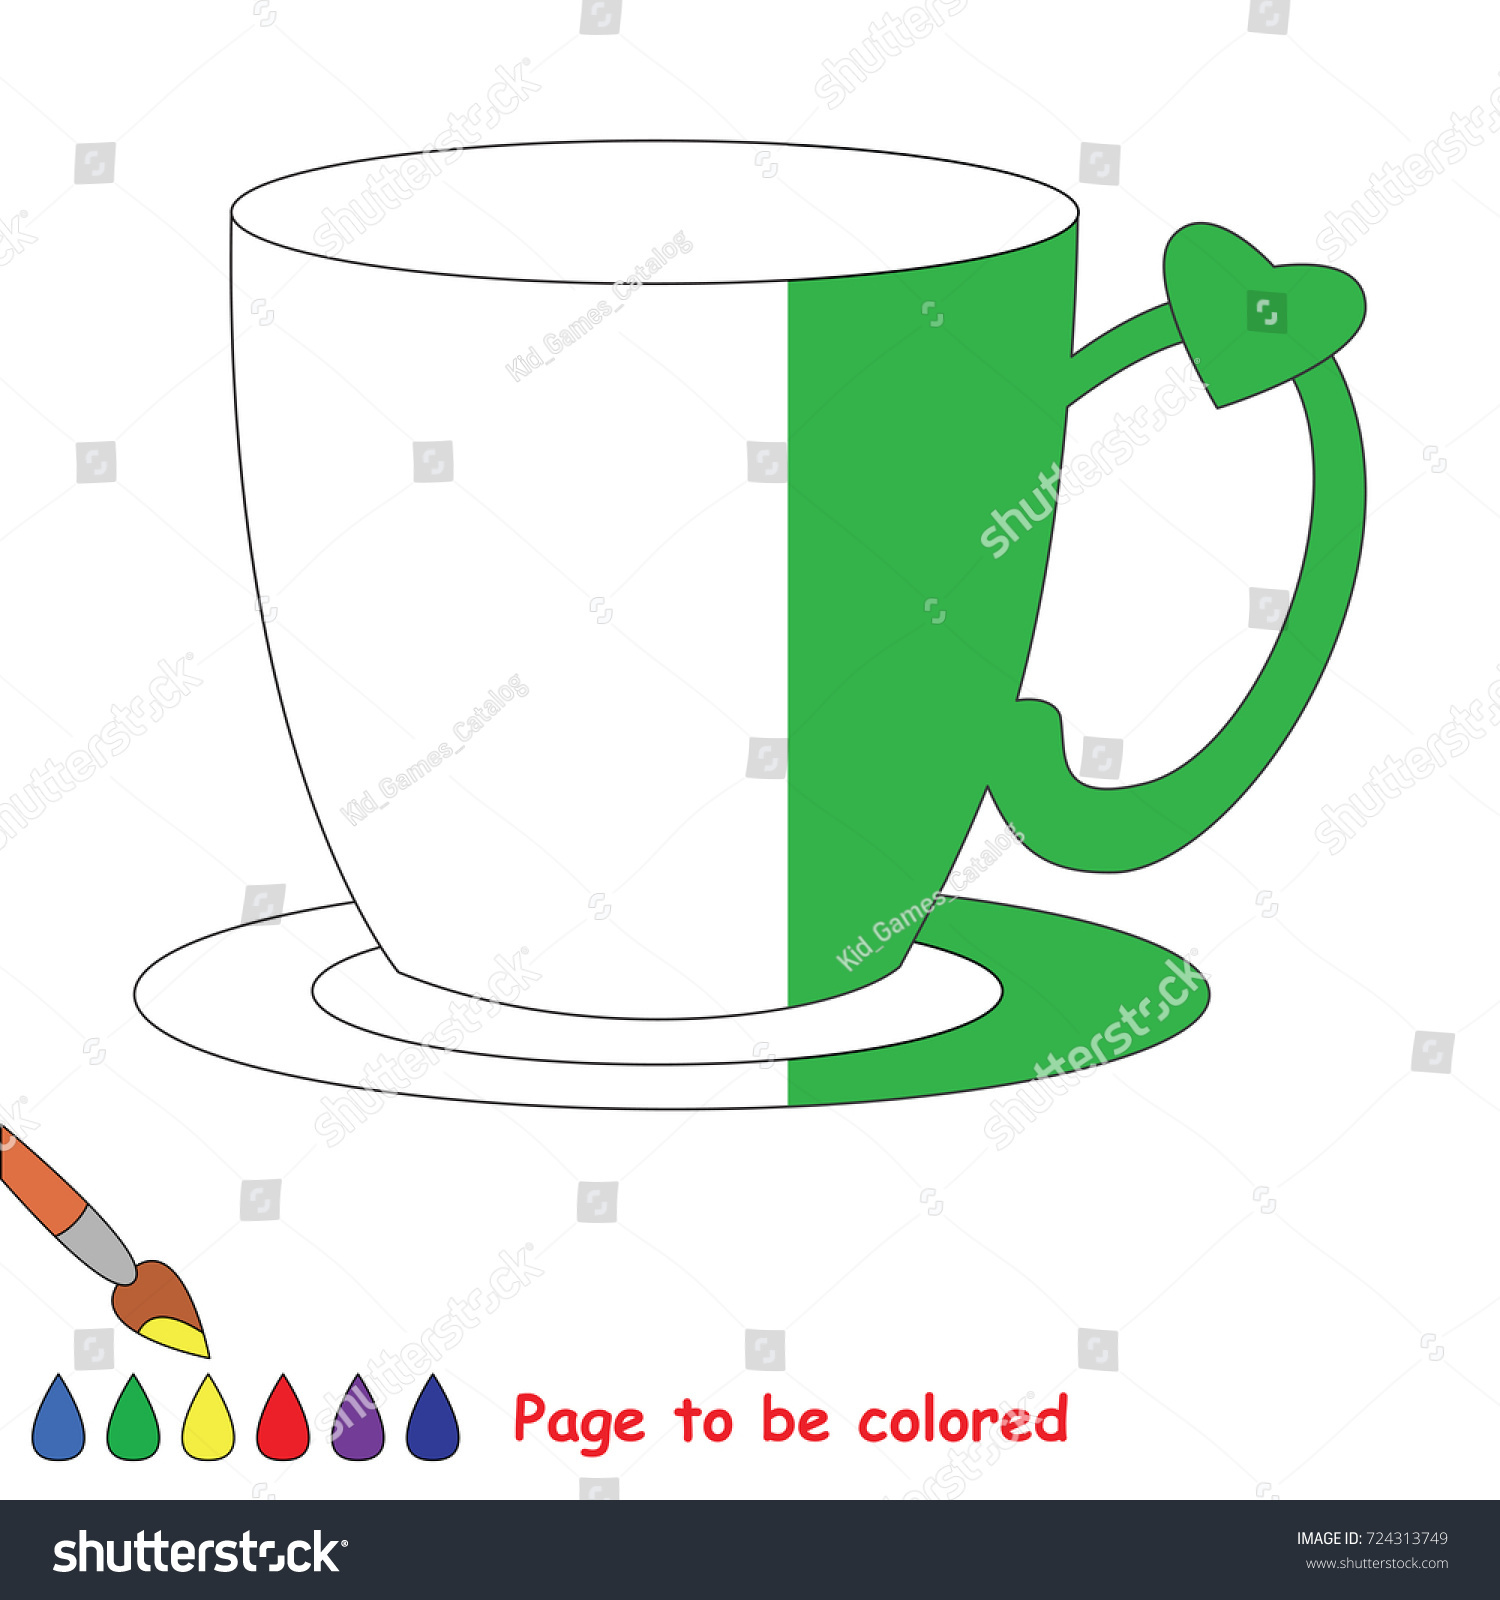 Tea Pair Cup Coloring Book Educate Stock Vector (2018) 724313749 ...